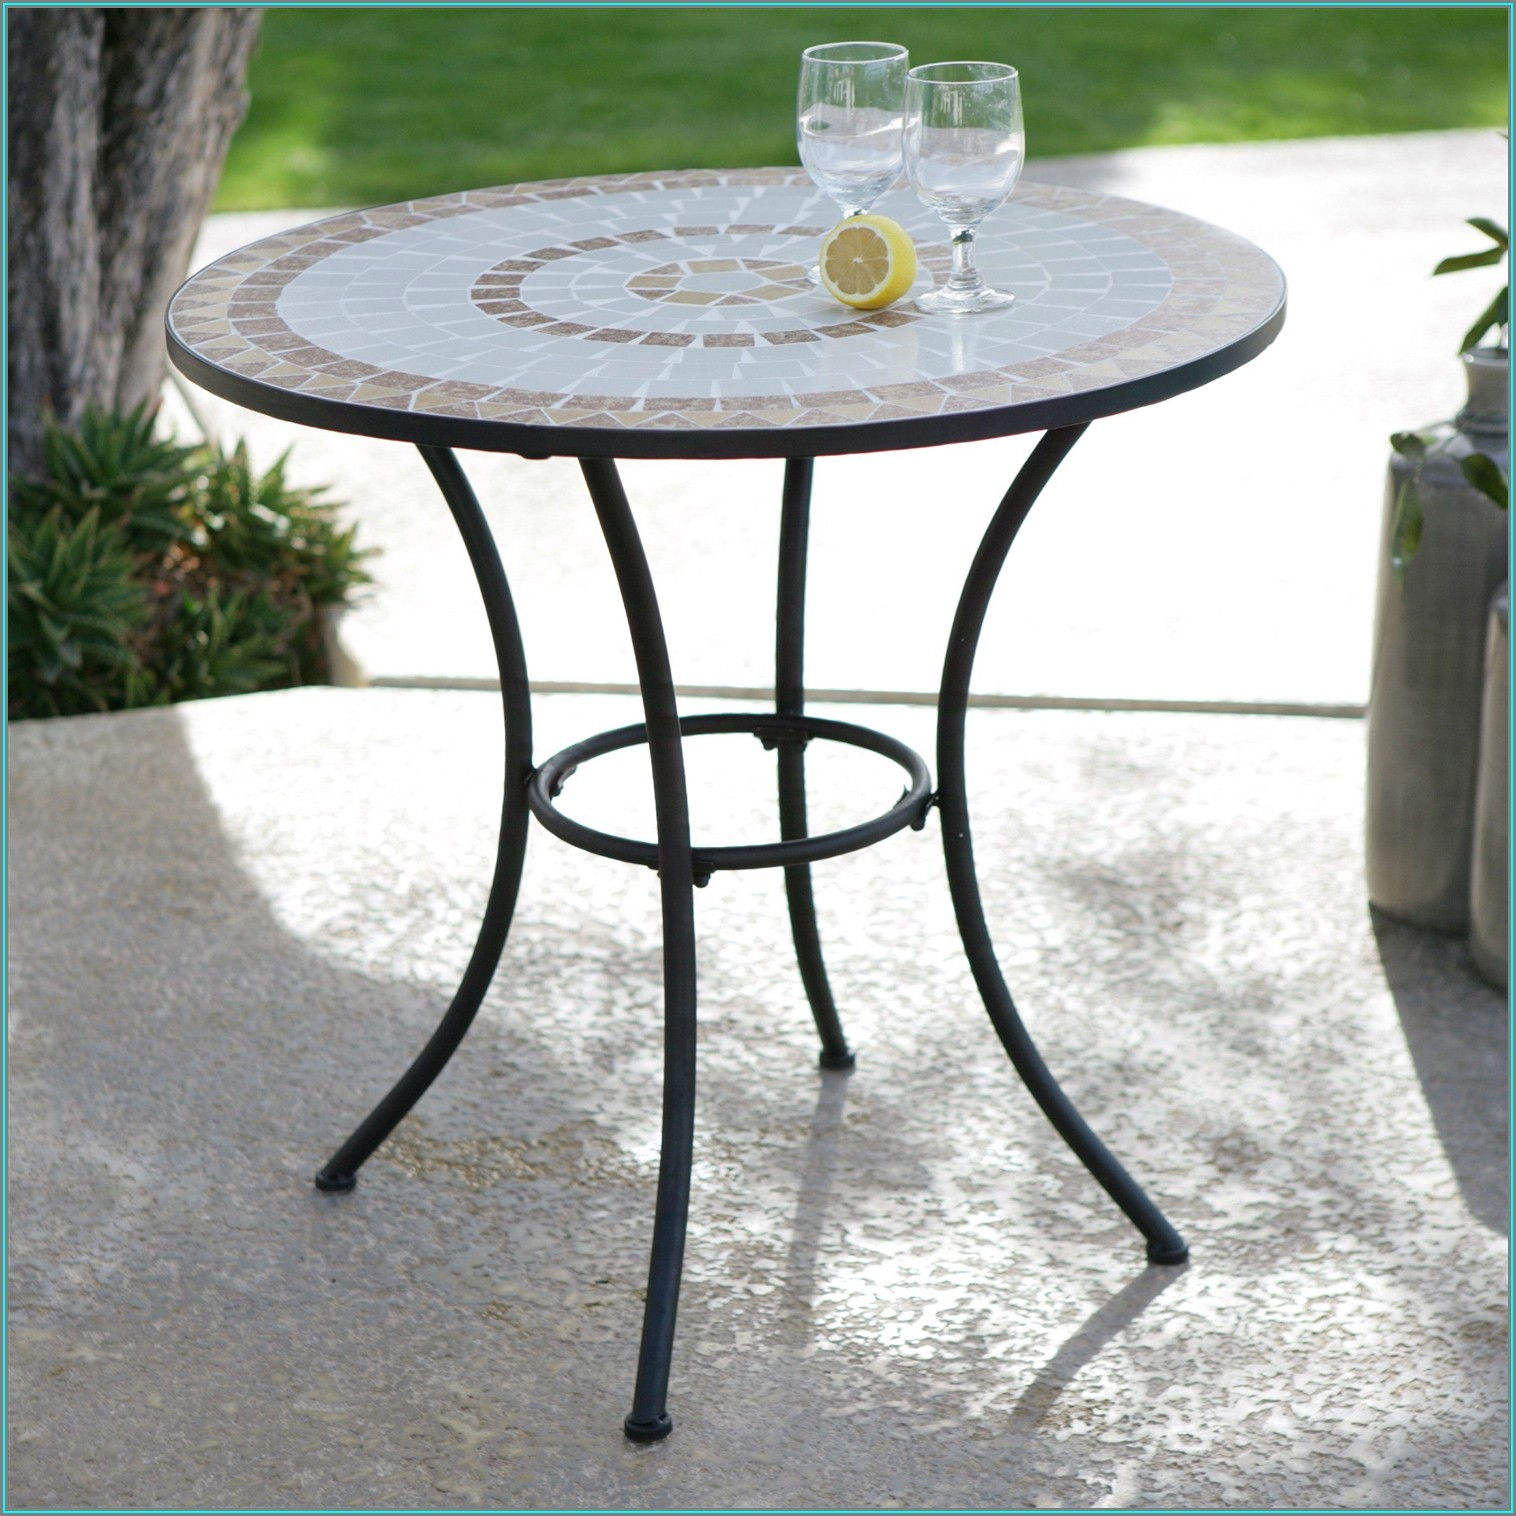 Tile Top Outdoor Patio Tables